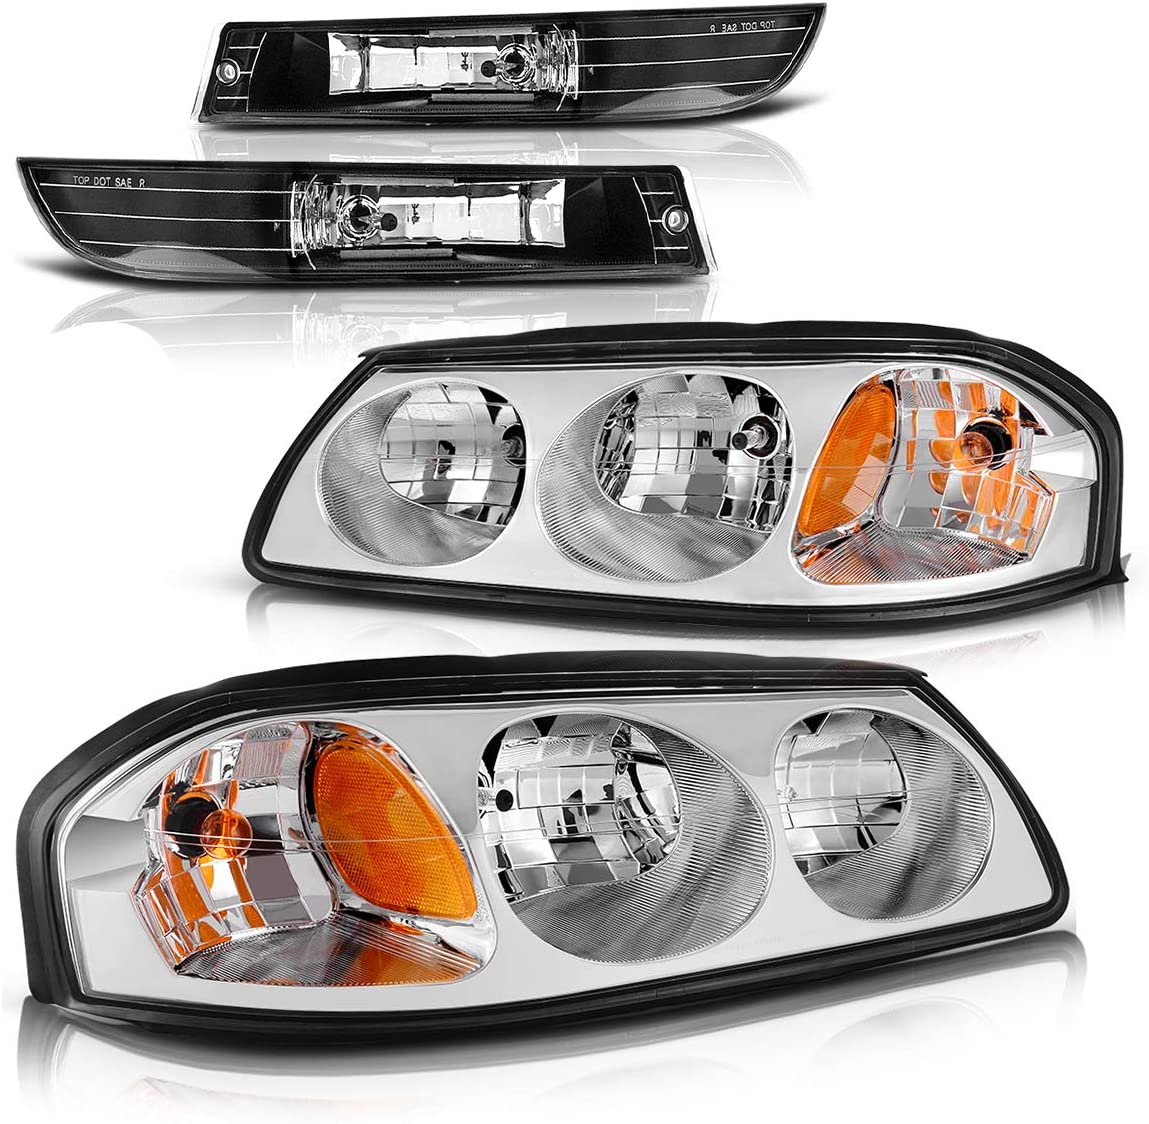 Headlight Assembly and Fog Lights Set for 2000 2001 2002 2003 2004 2005 Chevy Impala